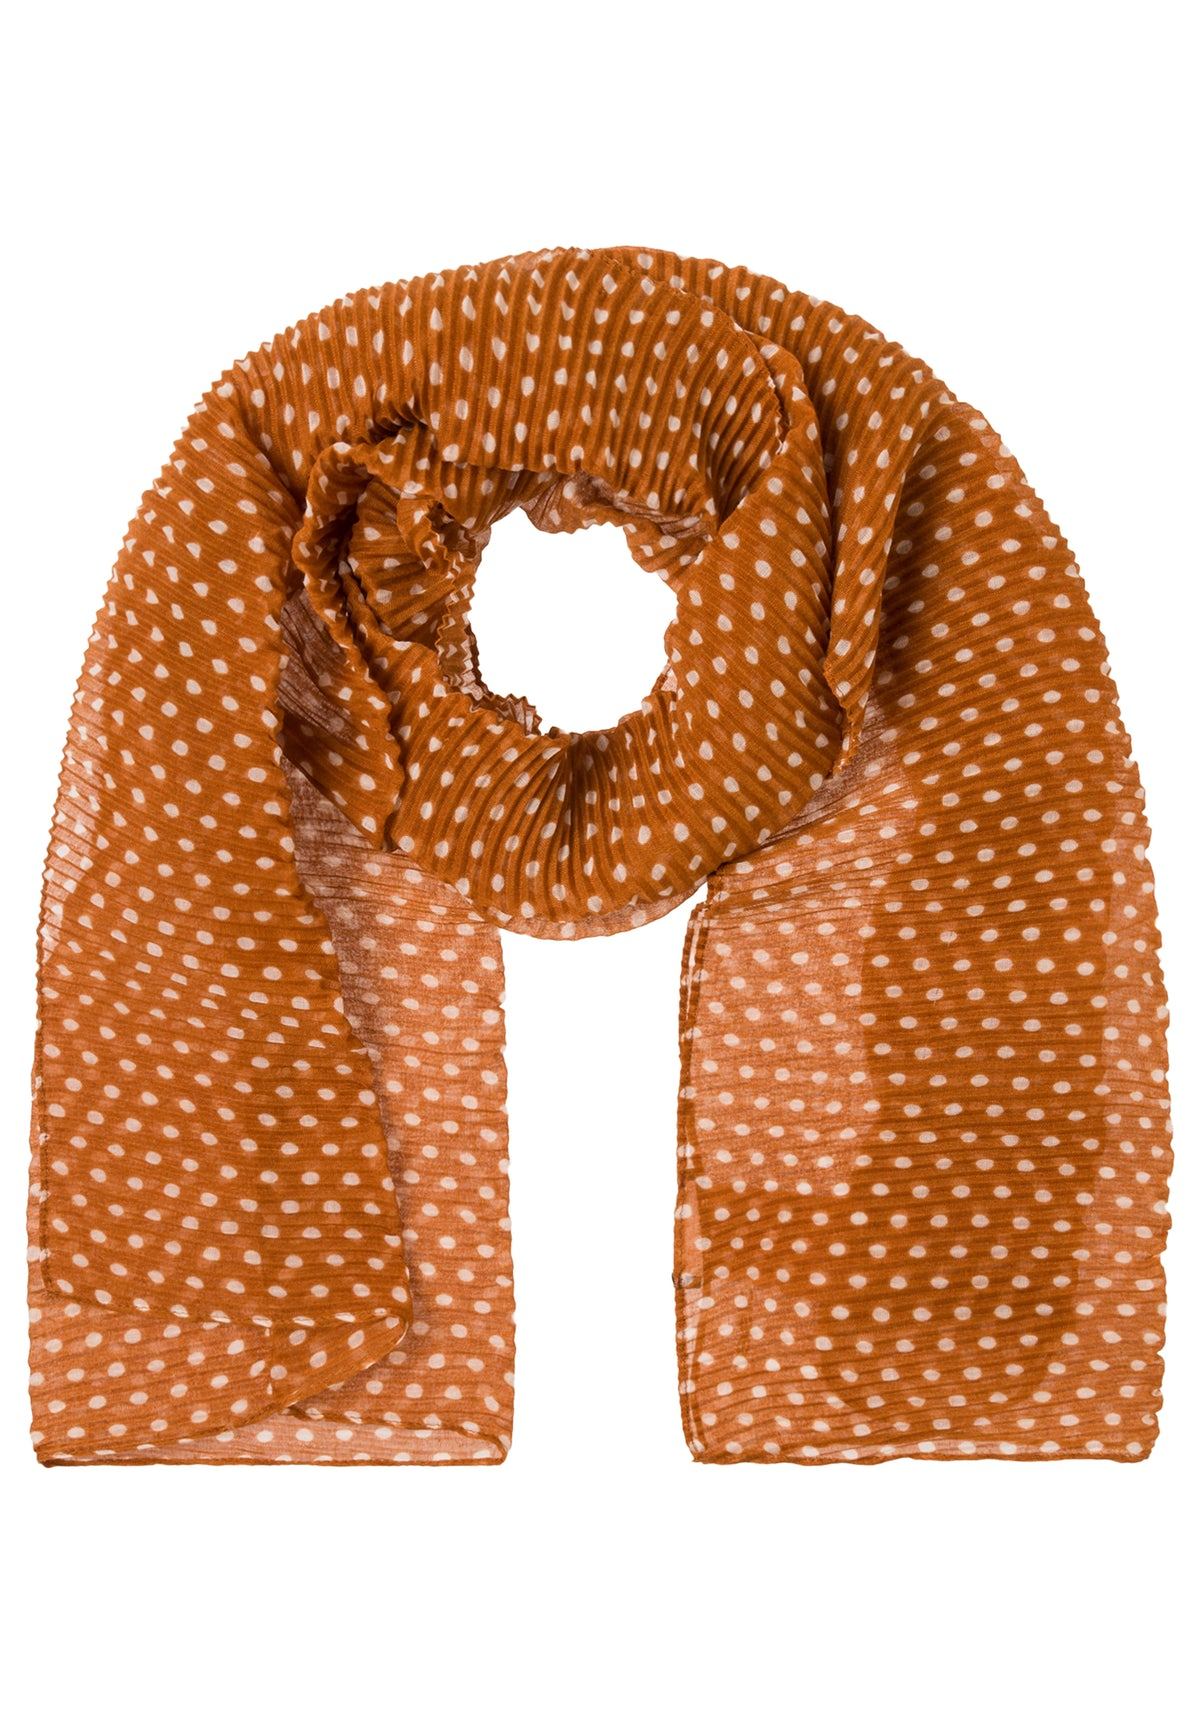 Micro Pleat and Polka Dot Scarf